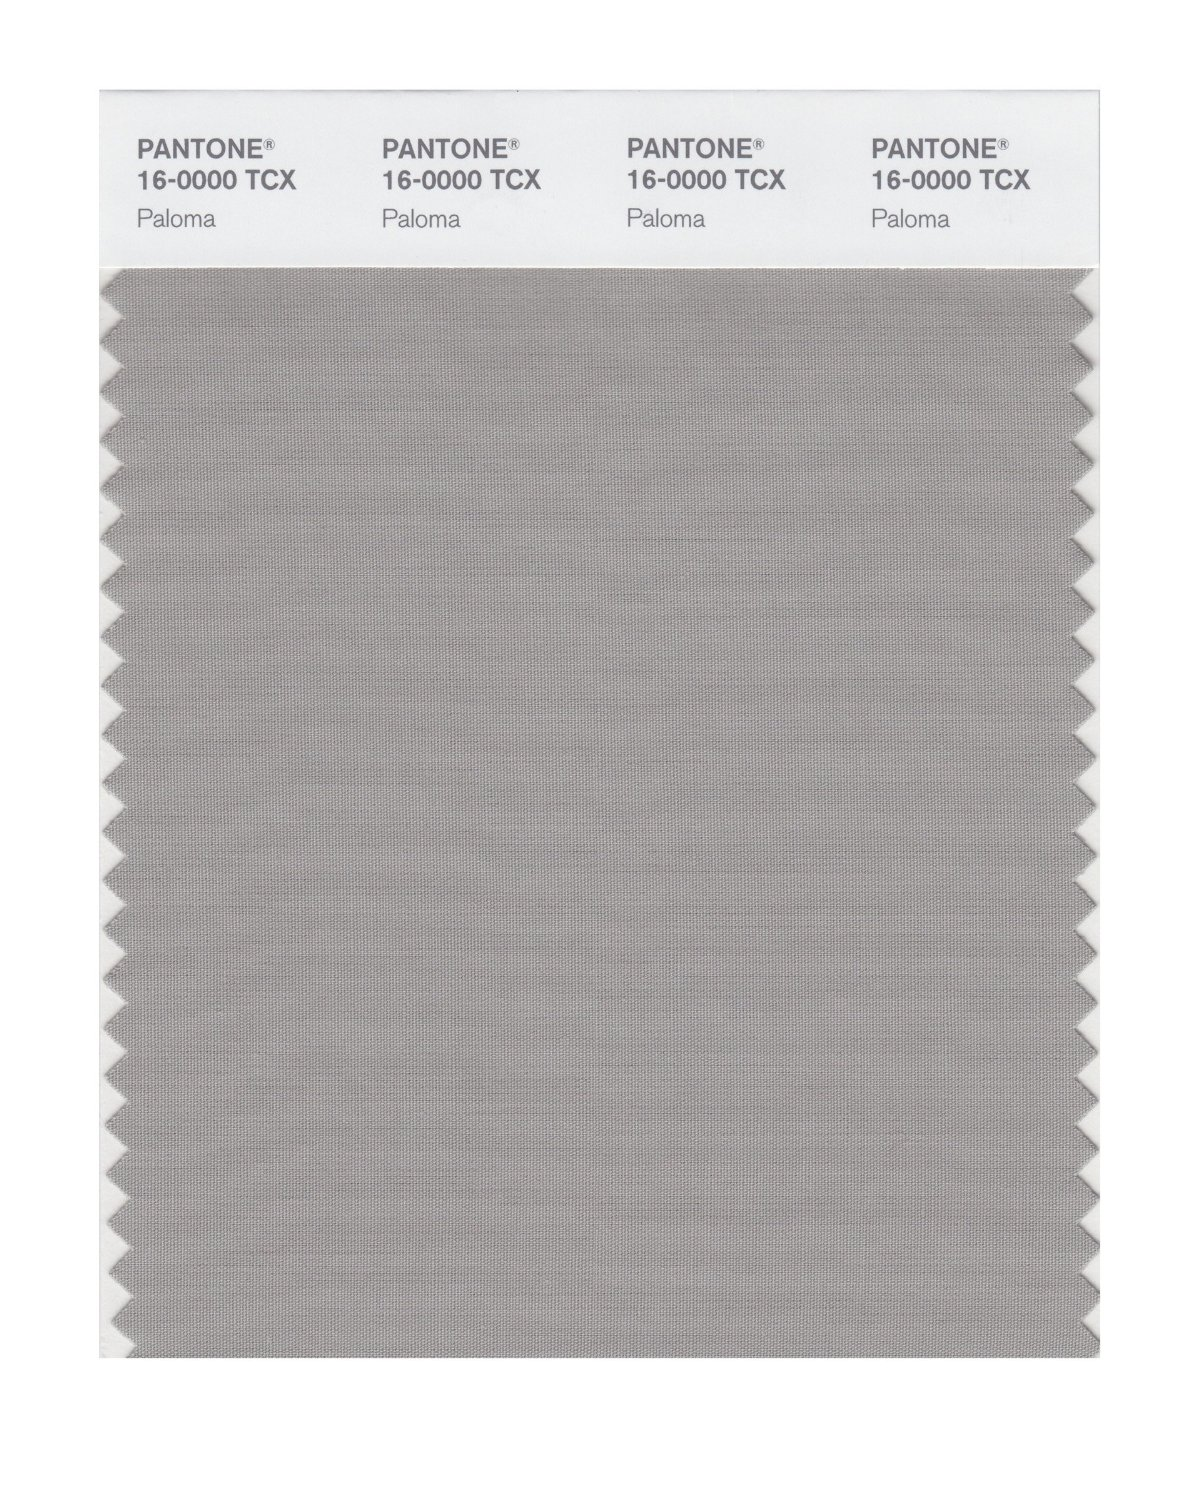 Pantone Smart Swatch 16-0000 Paloma